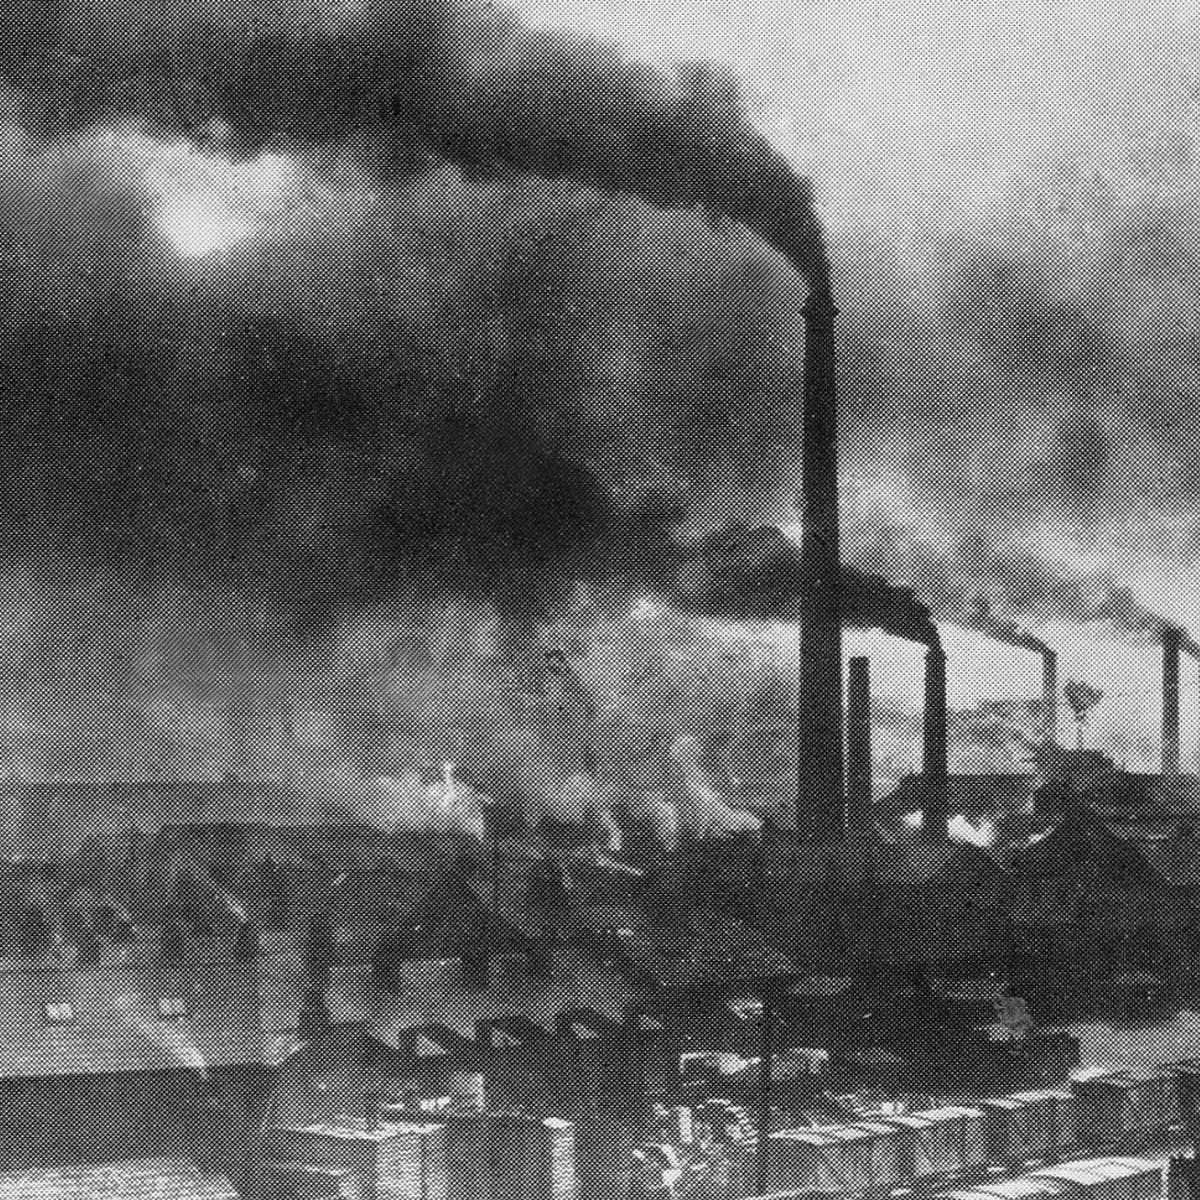 Air pollution in Victorian-era Britain – its effects on